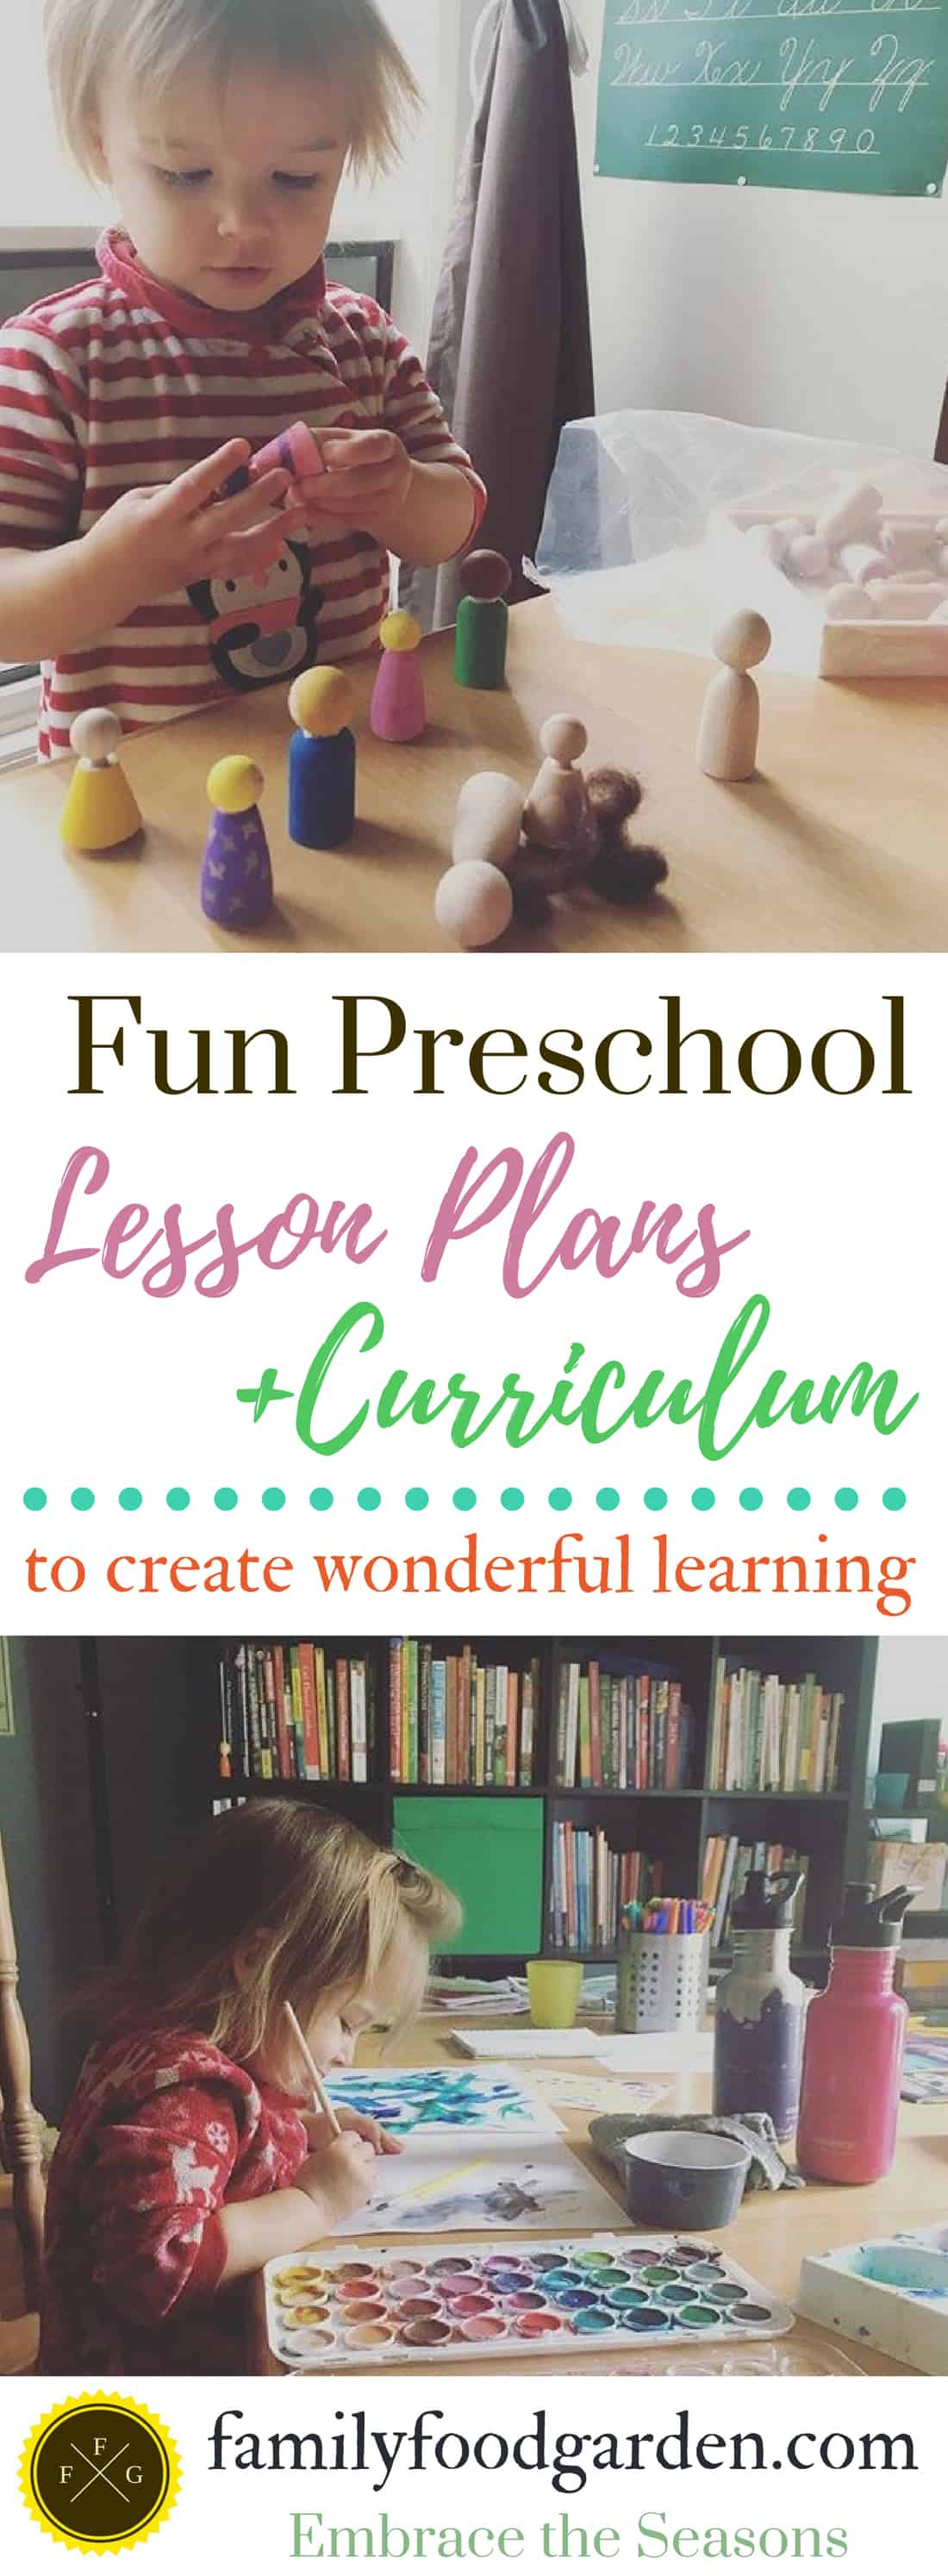 Preschool homeschool curriculum and lesson plans